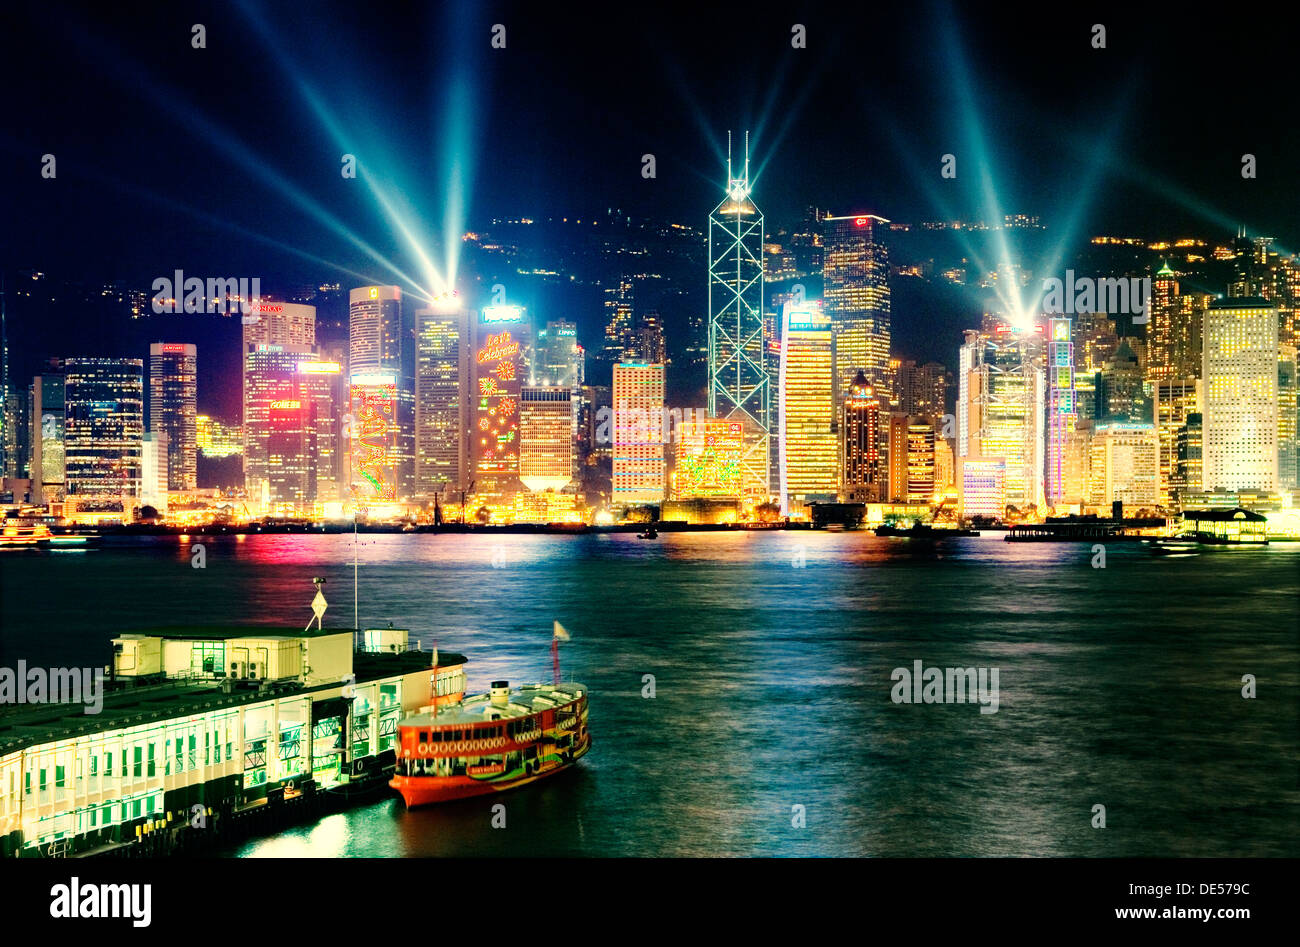 Hong Kong Island China city skyline with night laser light show seen across Victoria Harbour from Kowloon Star Ferry terminal - Stock Image